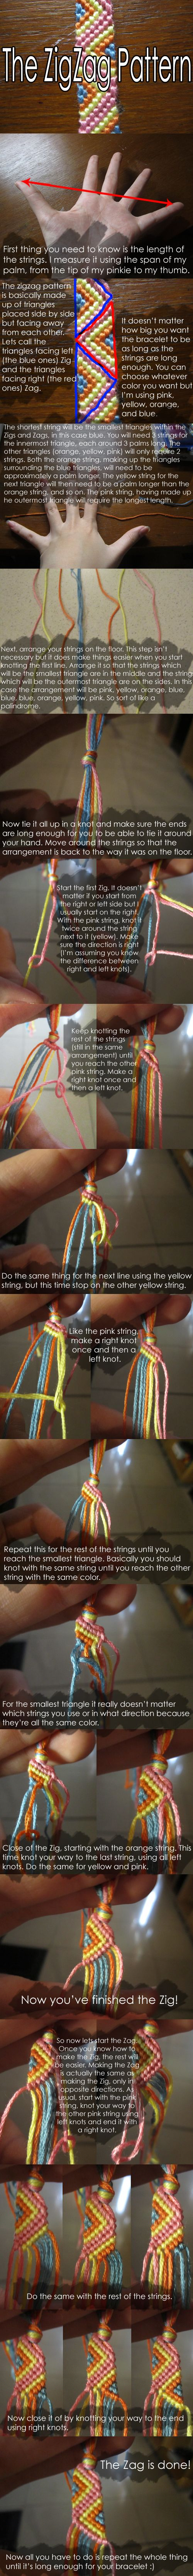 Zigzag bracelet tutorial always wanted to learn how to do this